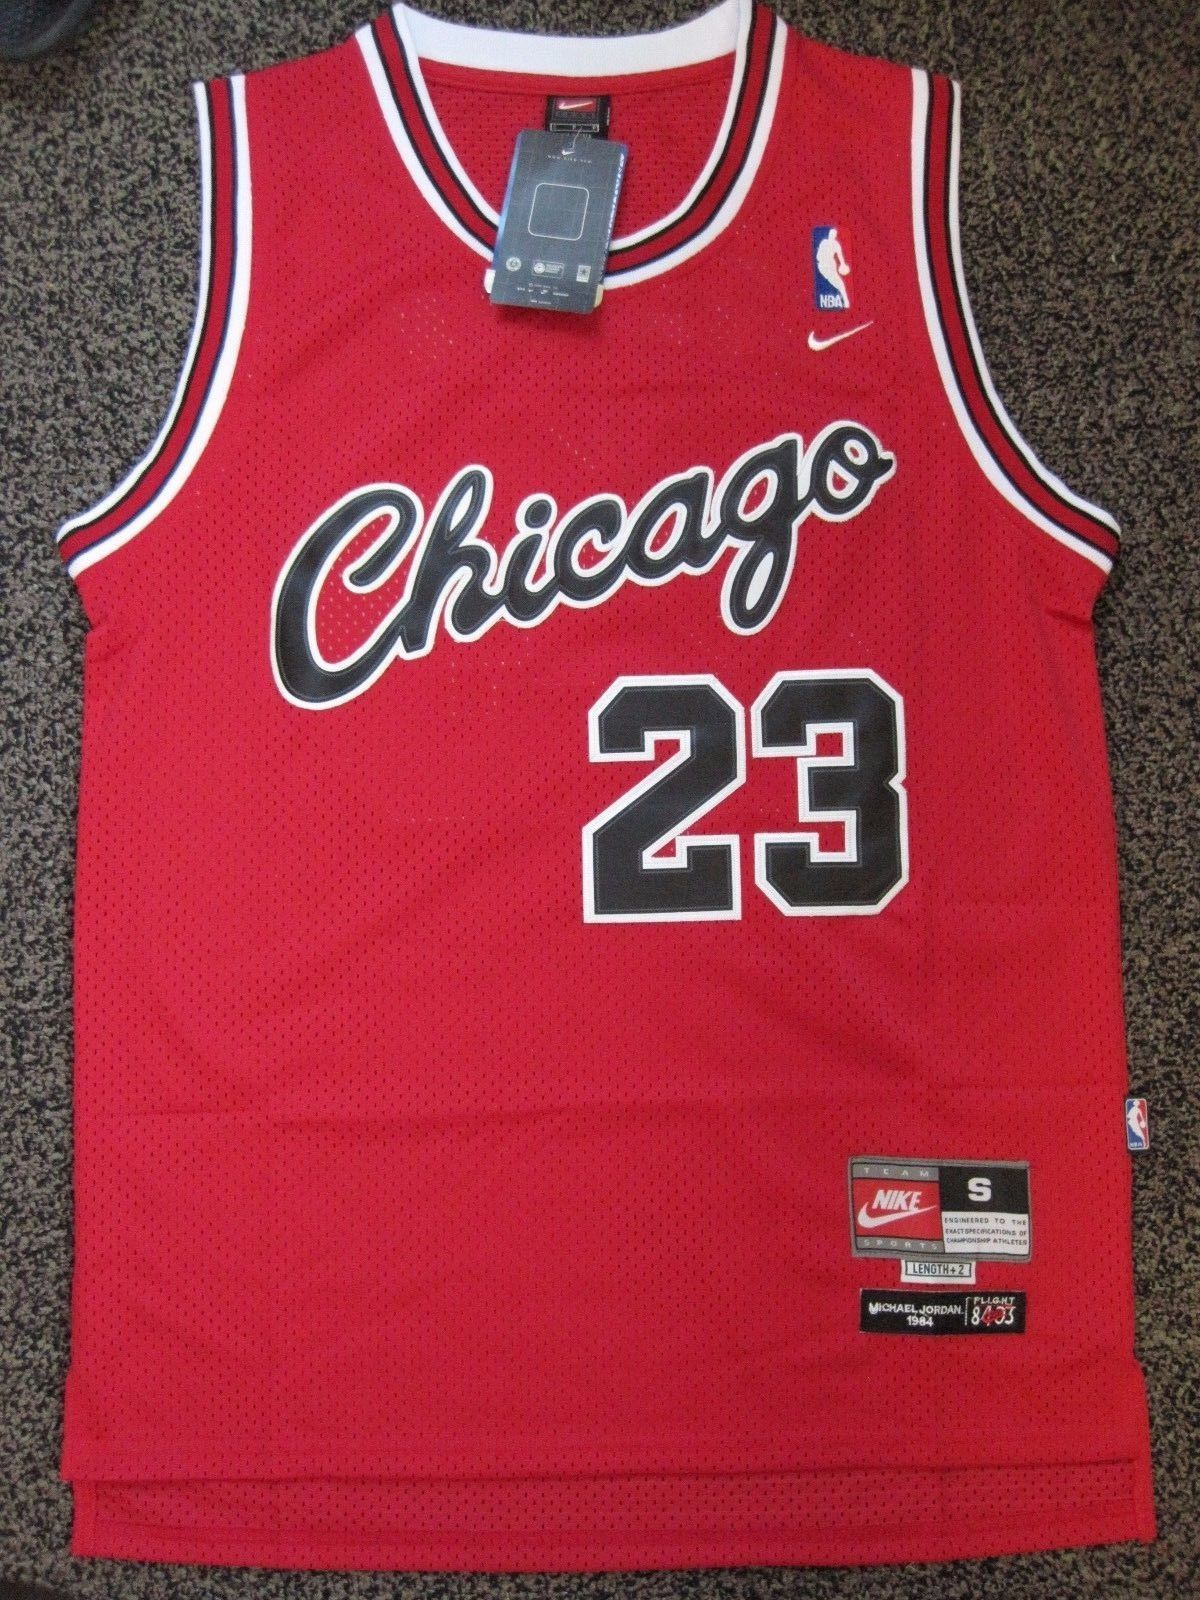 on sale 3ccf0 49e54 chicago bulls old school jersey